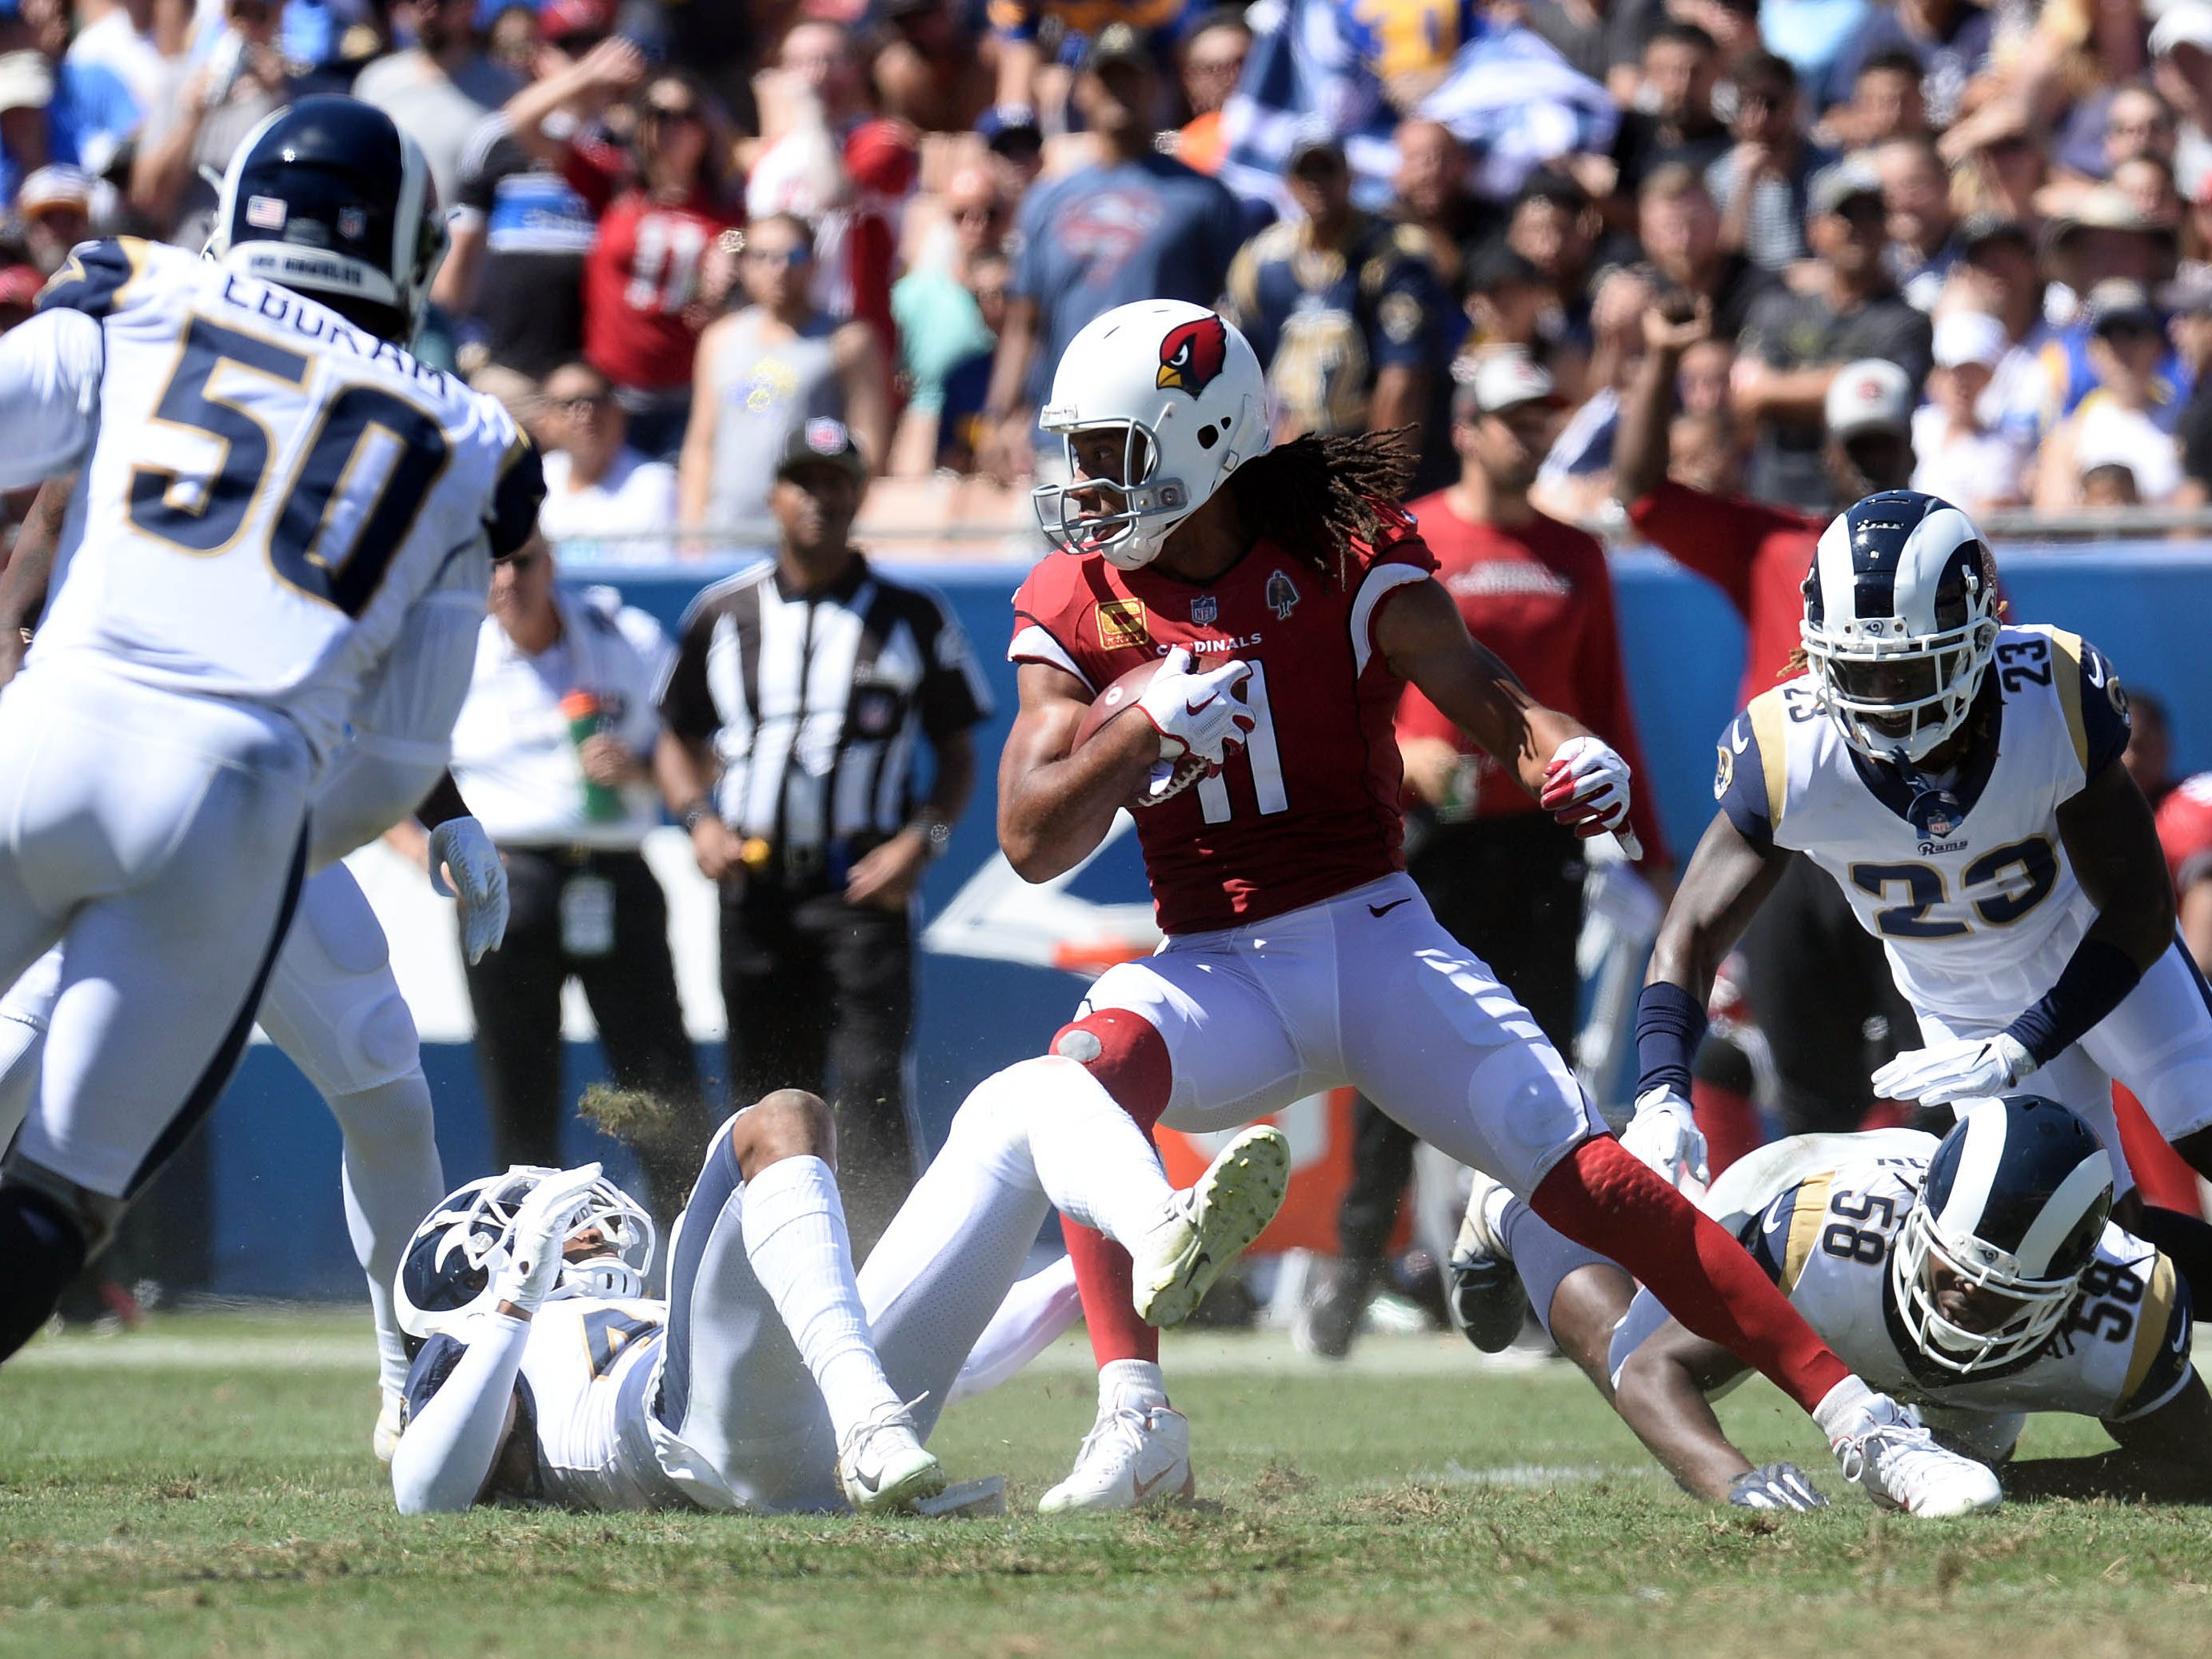 September 16, 2018; Los Angeles, CA, USA; Arizona Cardinals wide receiver Larry Fitzgerald (11) runs the ball against the Los Angeles Rams during the first half at the Los Angeles Memorial Coliseum. Mandatory Credit: Gary A. Vasquez-USA TODAY Sports